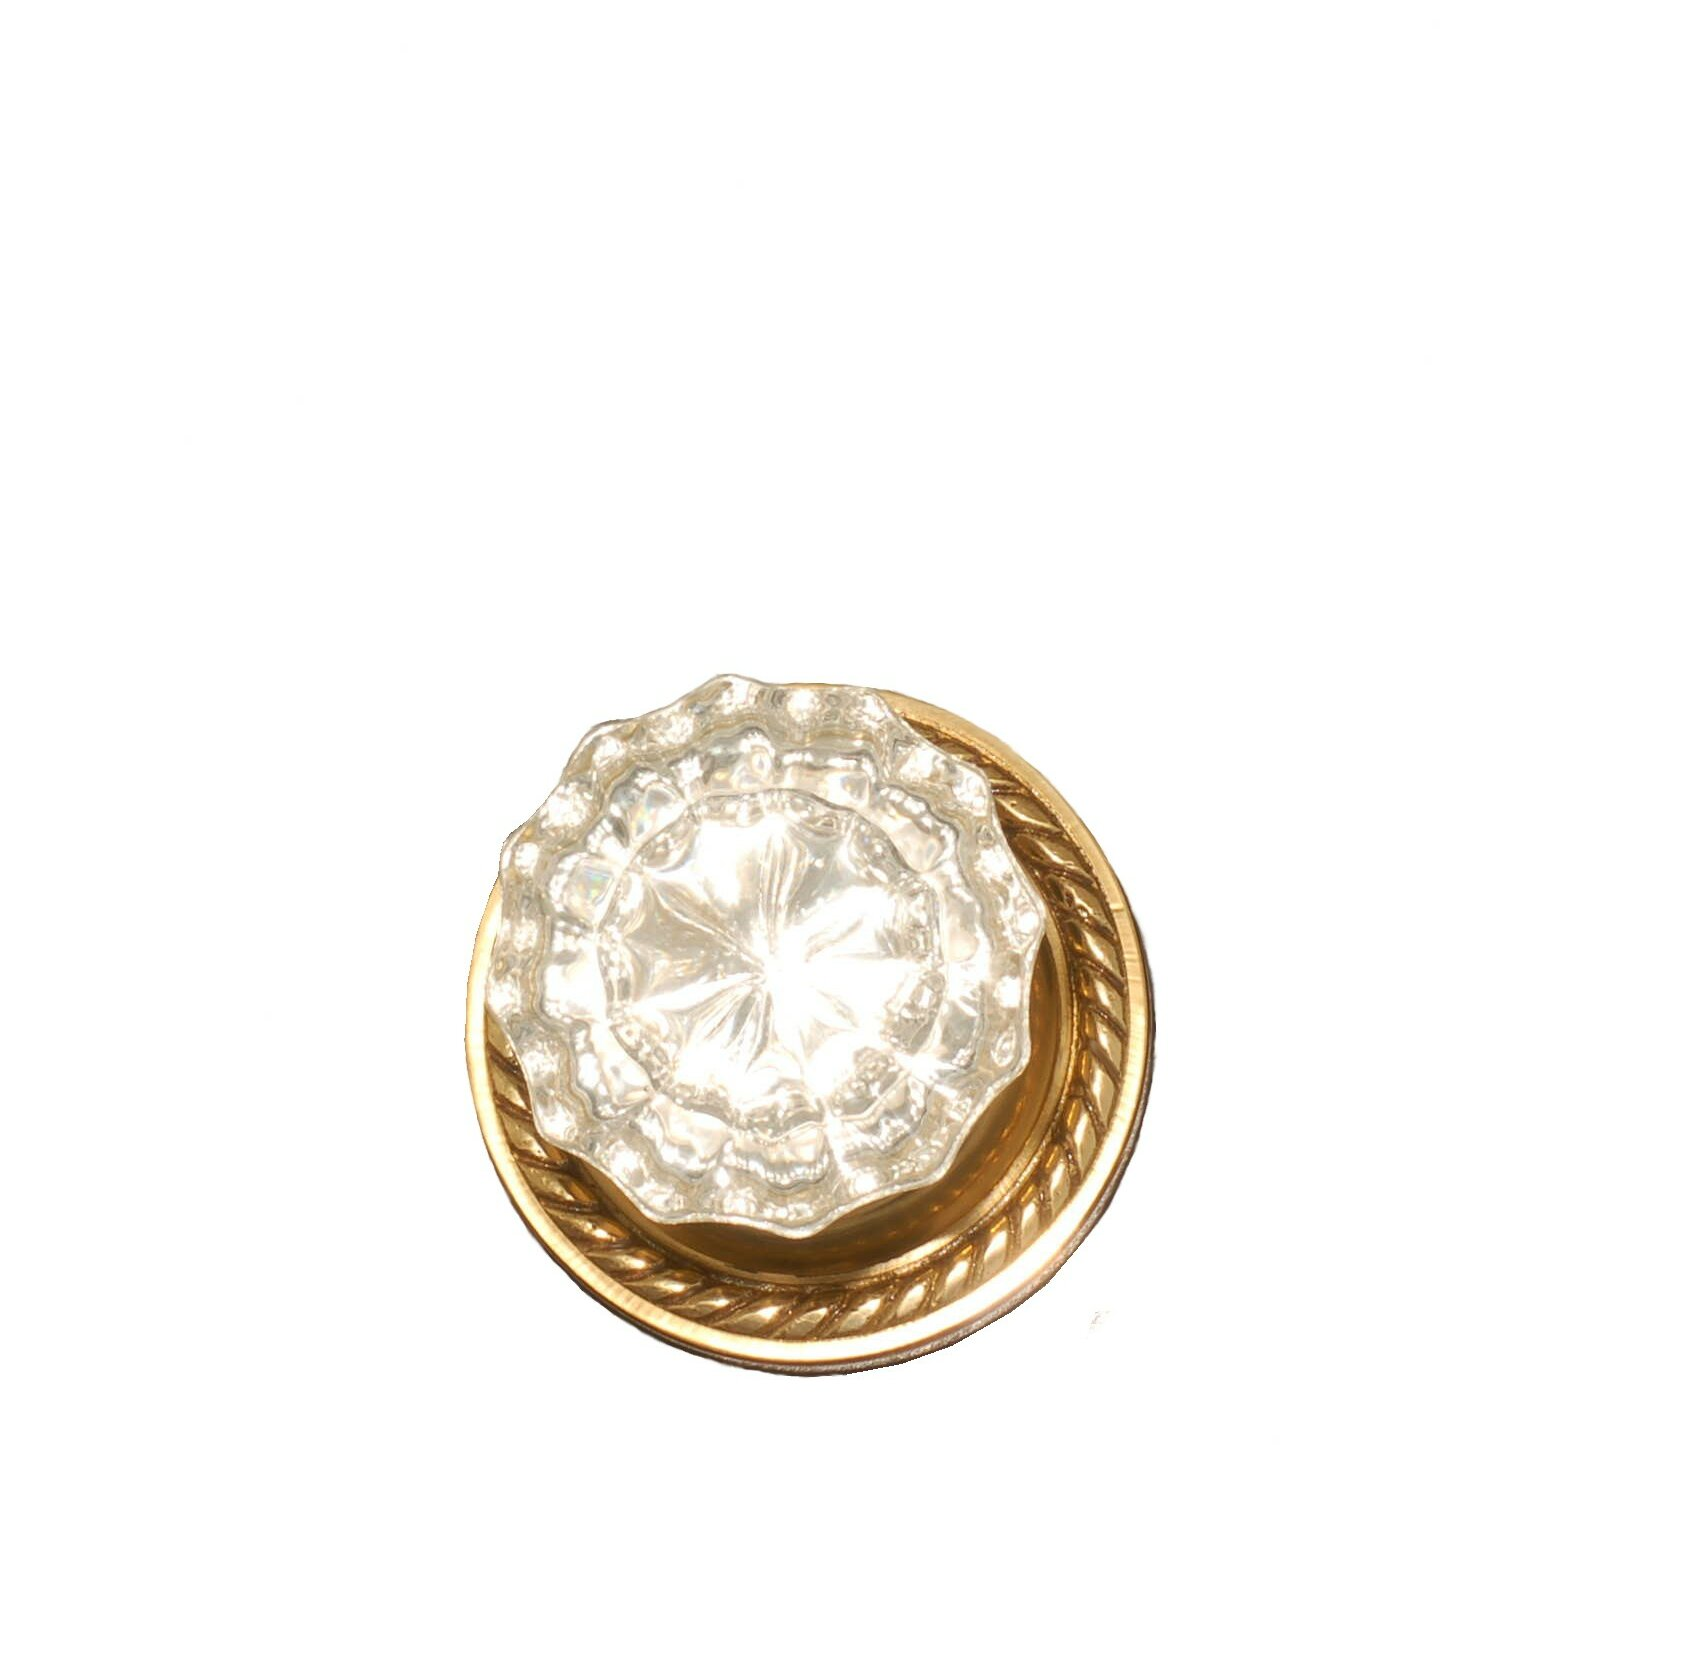 Classic Rosette Set With Diamond Crystal Door Knobs Privacy Polished Brass Doorsets.